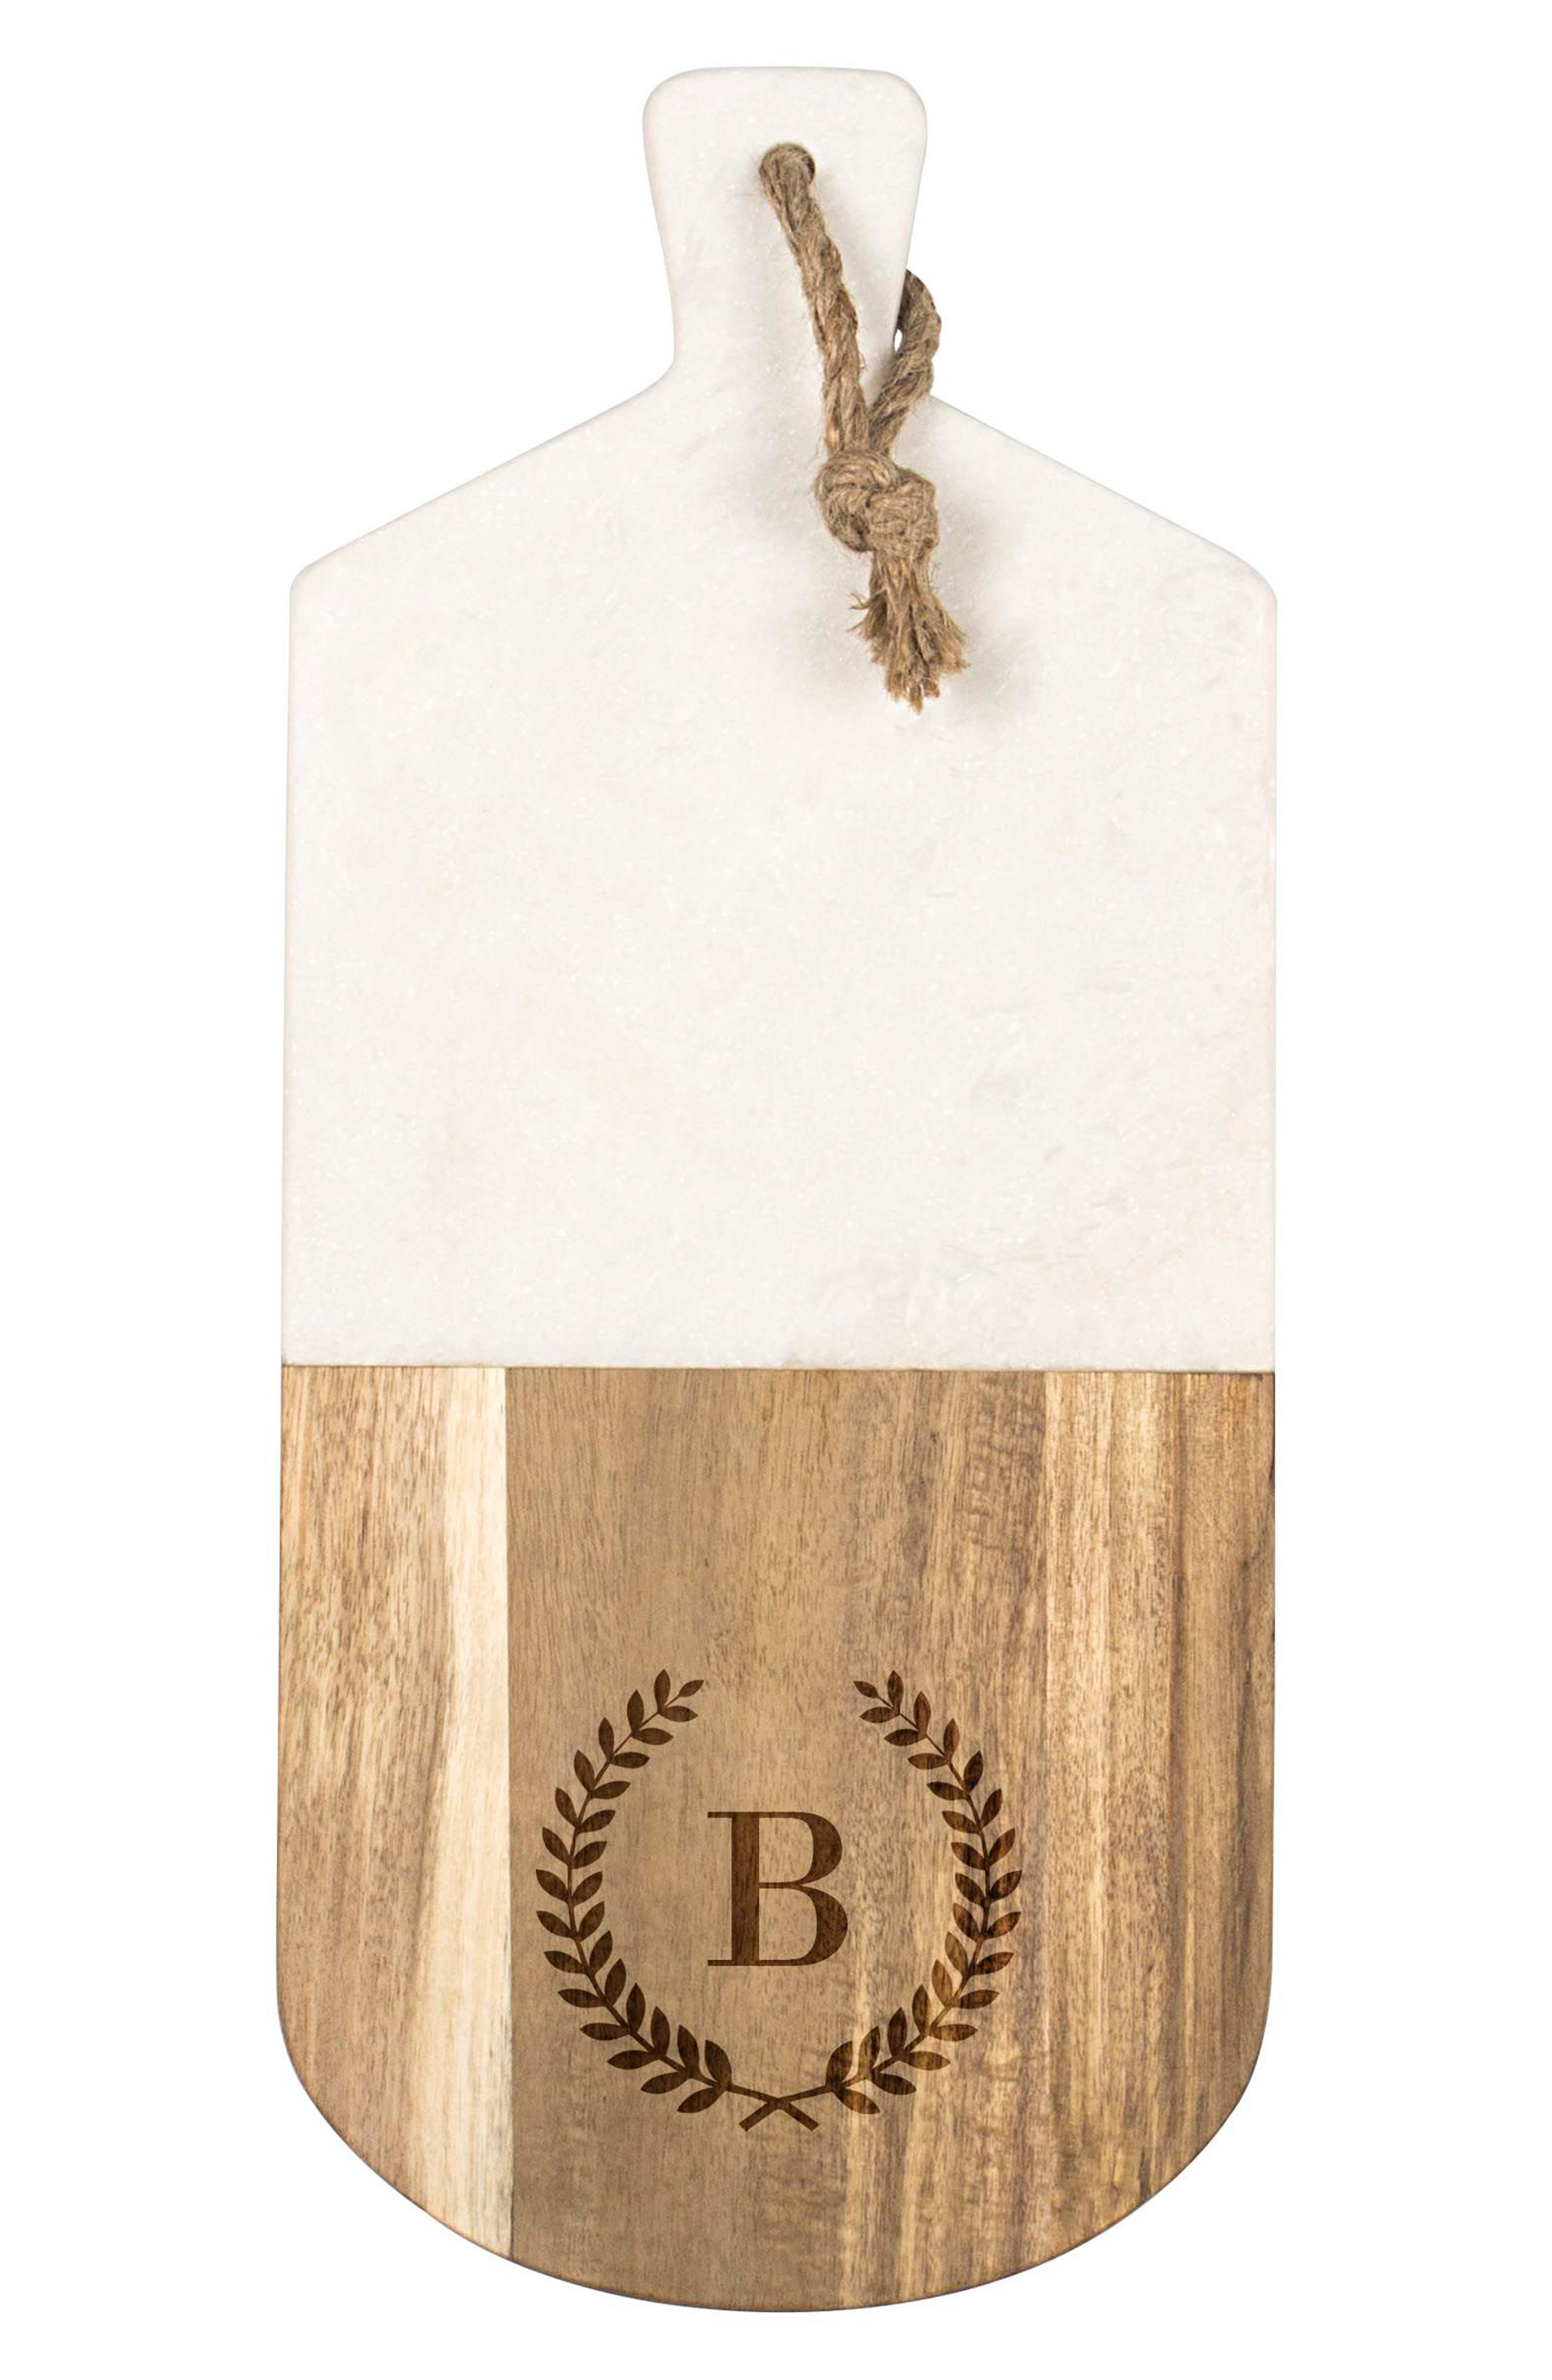 Monogram Marble & Wood Serving Board,                             Alternate thumbnail 2, color,